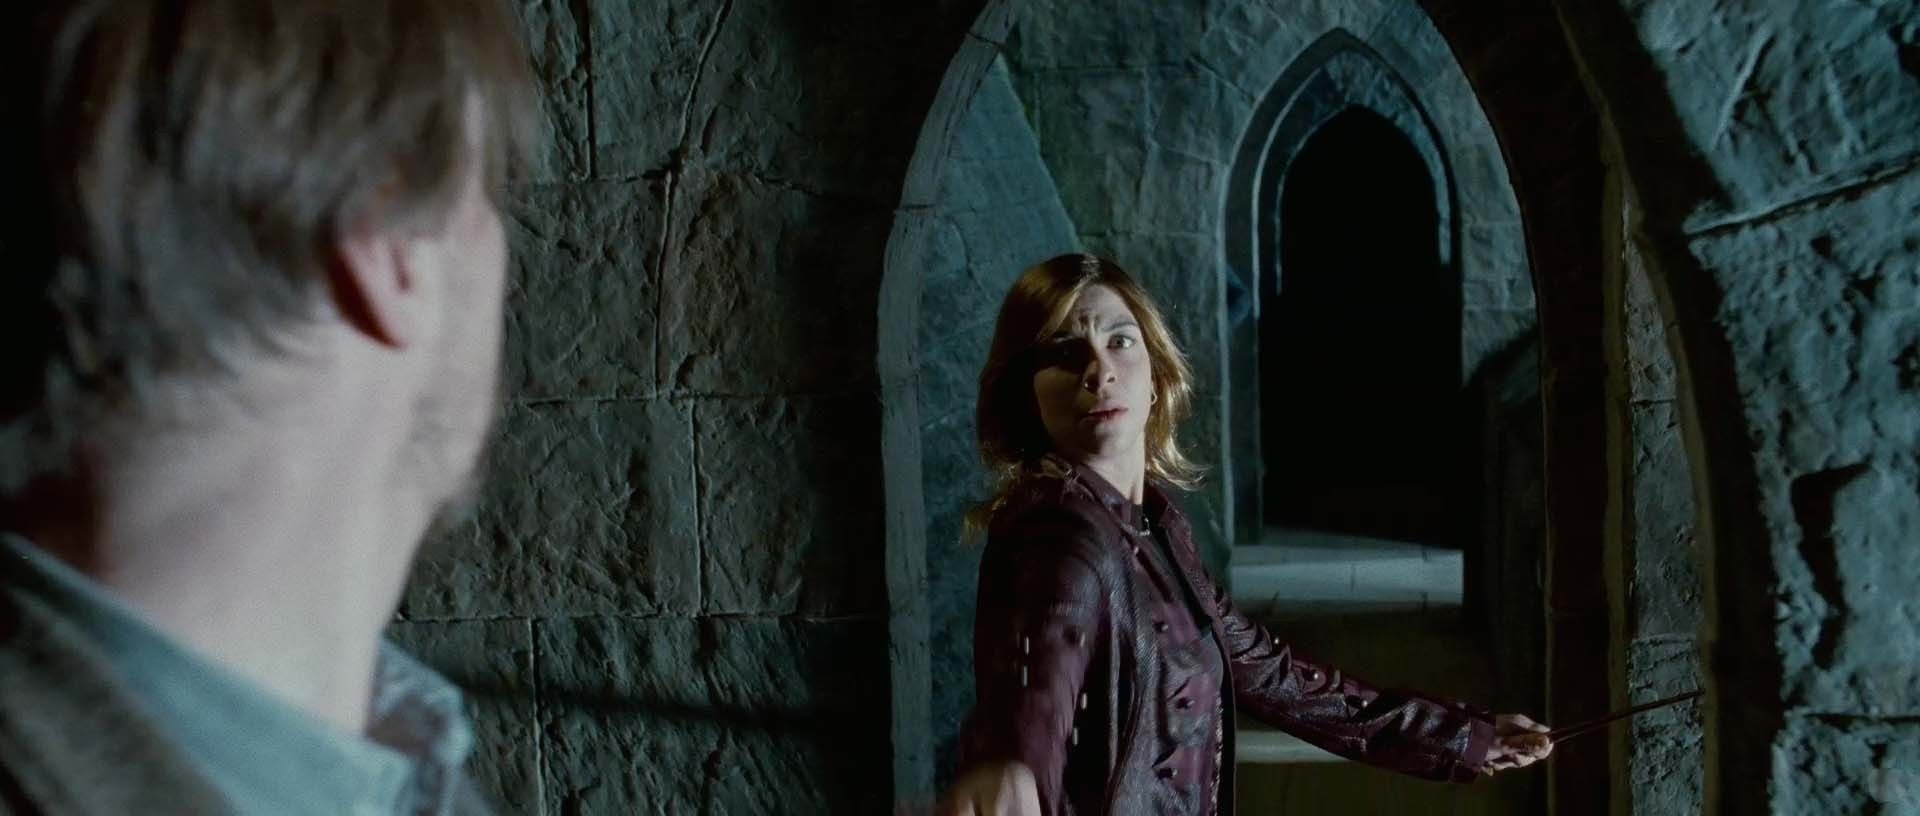 Tonks Lupin Image Tonks Lupin In Deathly Hallows Pt 2 Trailer Harry Potter Weekend Tonks And Lupin Harry Potter Fan